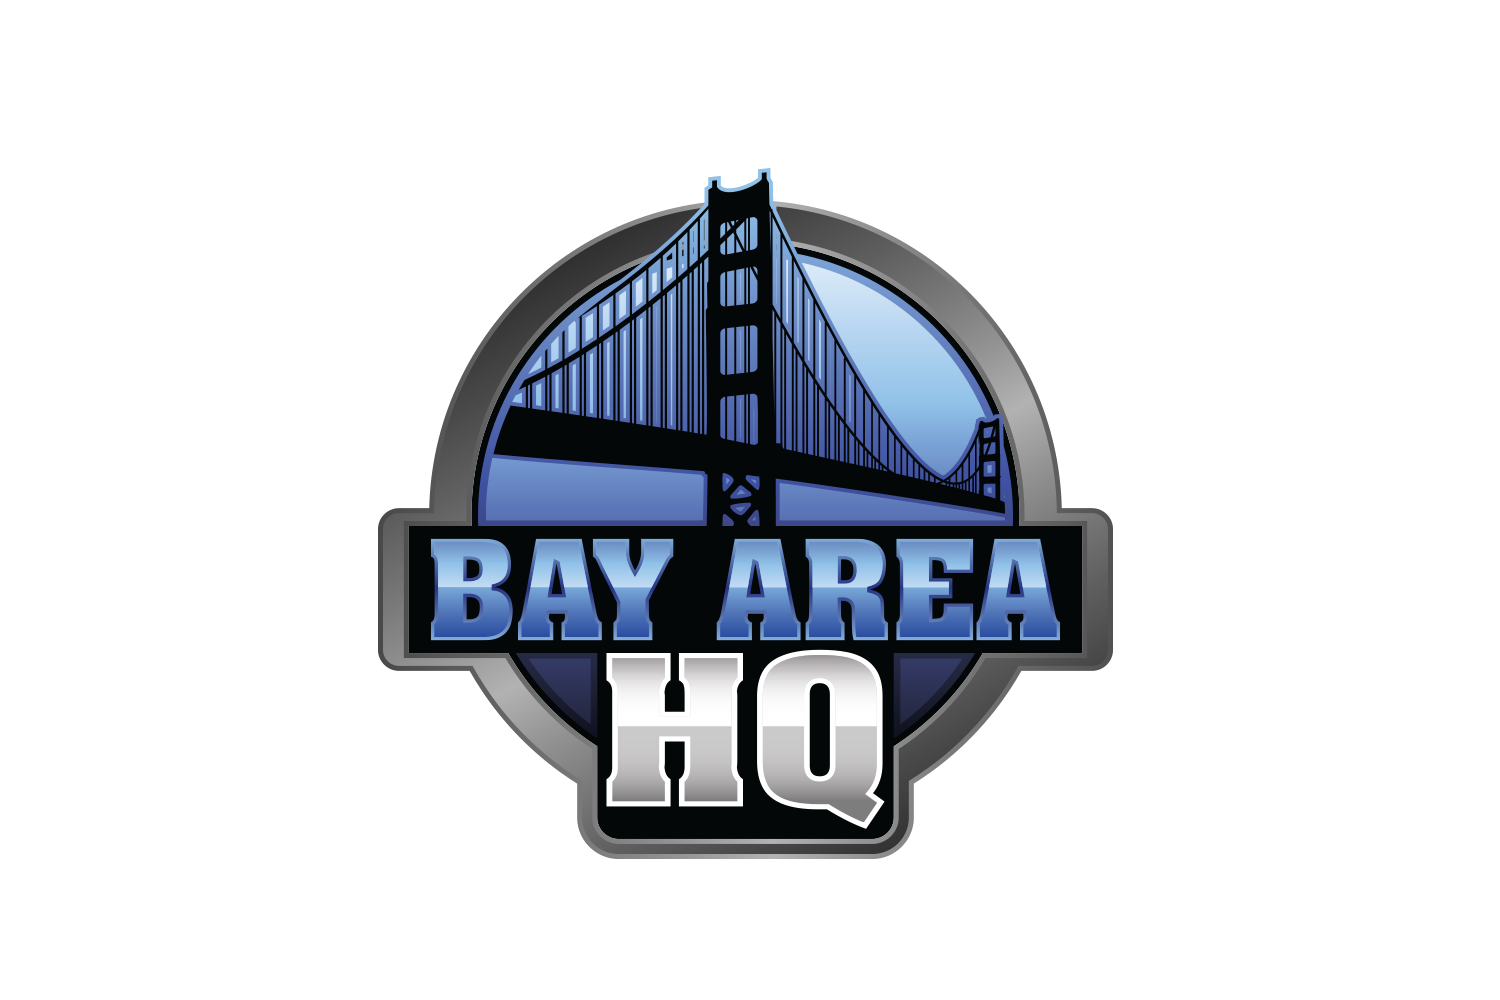 WATCH US YEAR-ROUND ON BAY AREA HQ! THE SAN FRANCISCO BAY AREA'S #1 ATHLETE & CELEBRITY INTERVIEW SHOW!